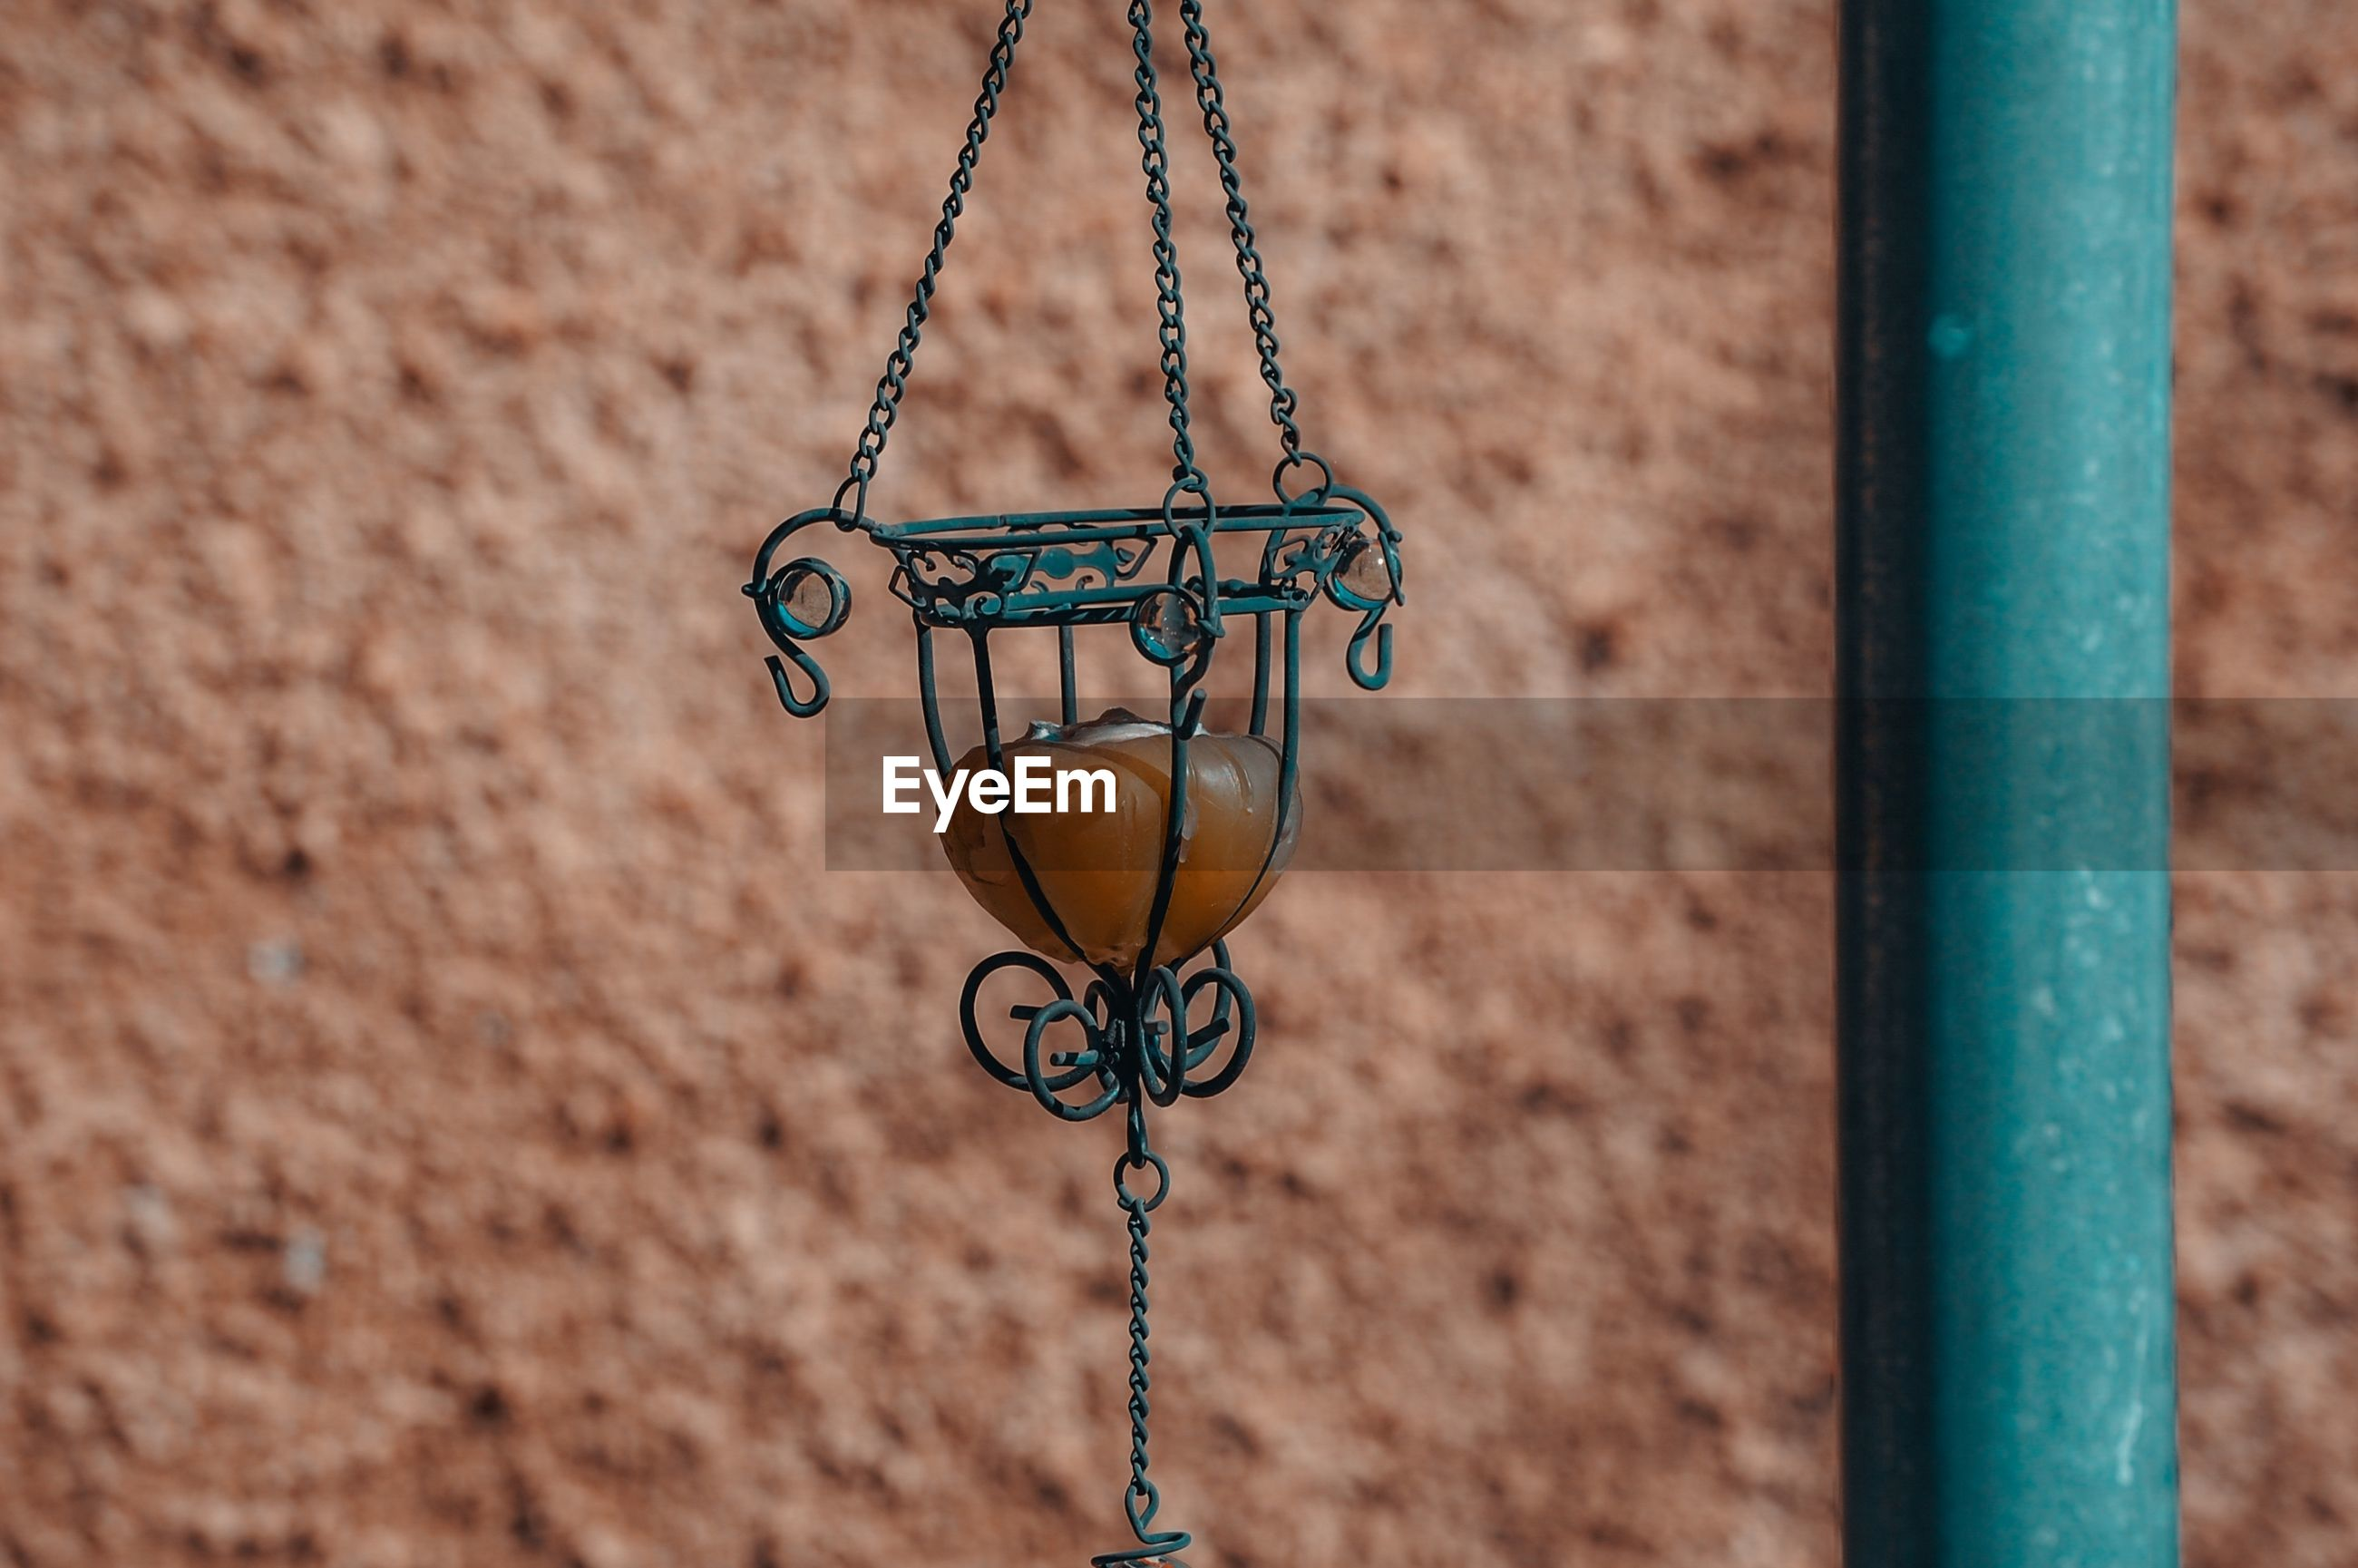 Close-up of lantern hanging against textured wall